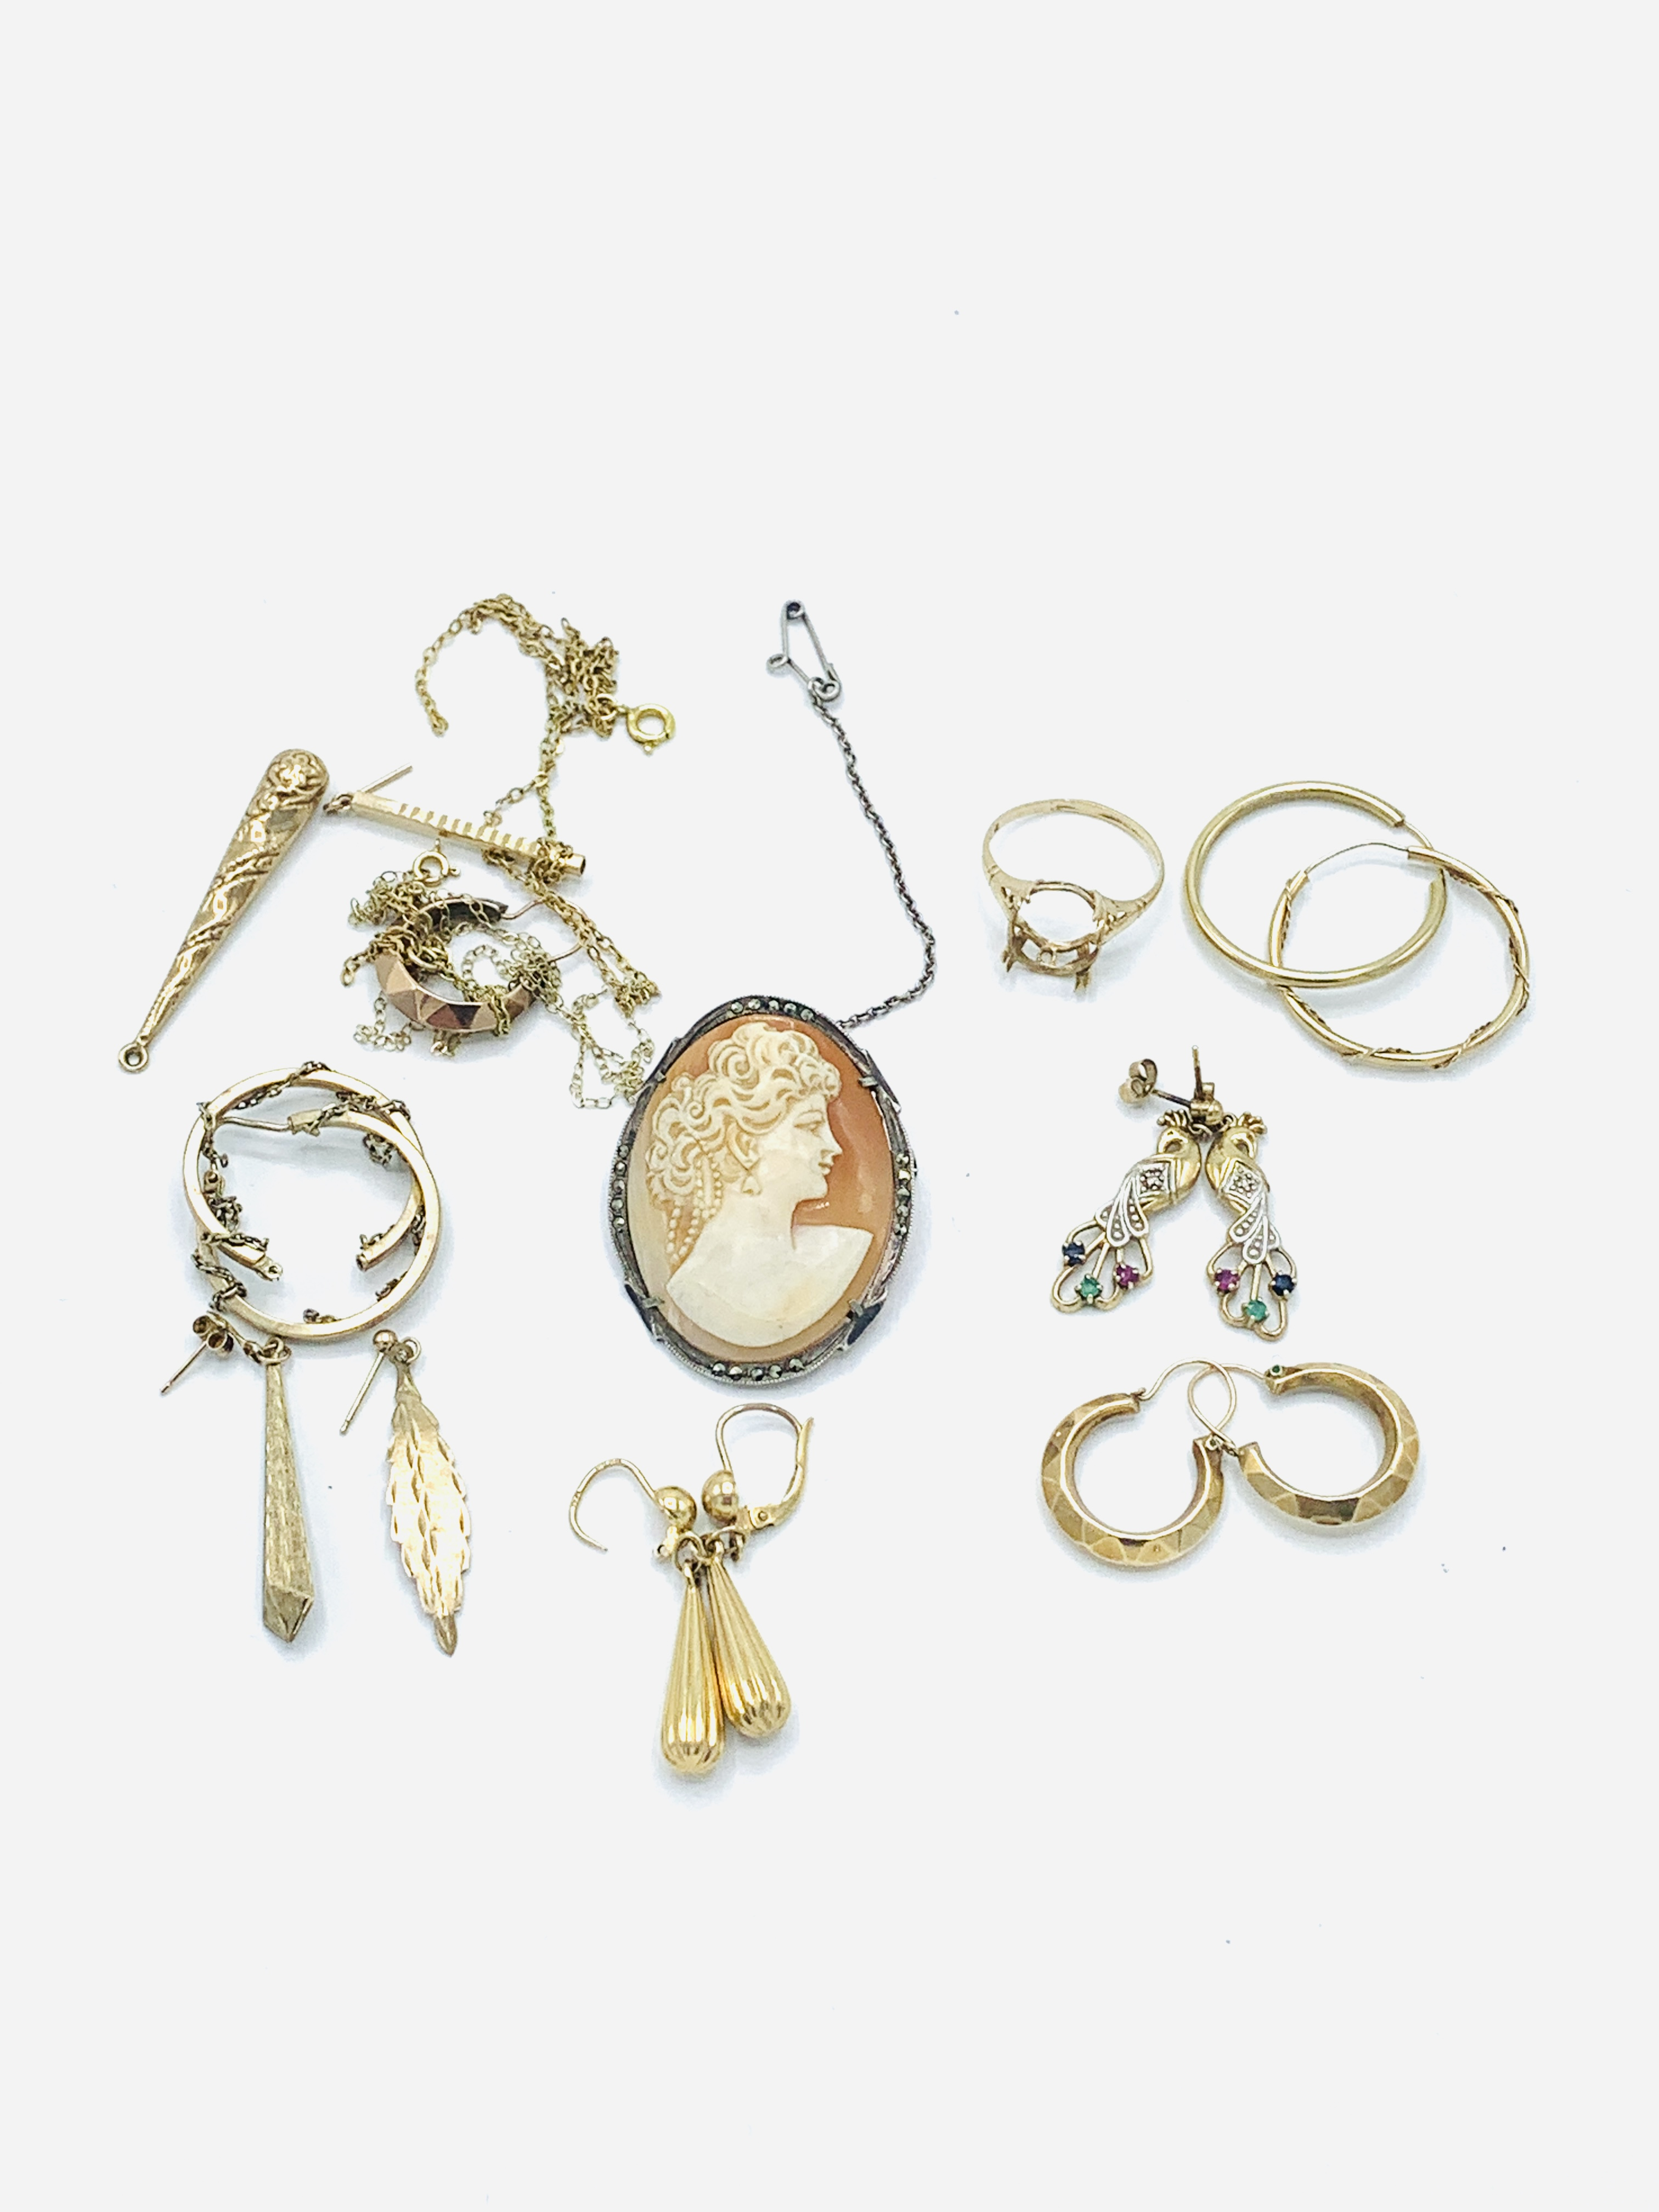 Six pairs of 9ct gold earrings; together with other jewellery - Image 2 of 5